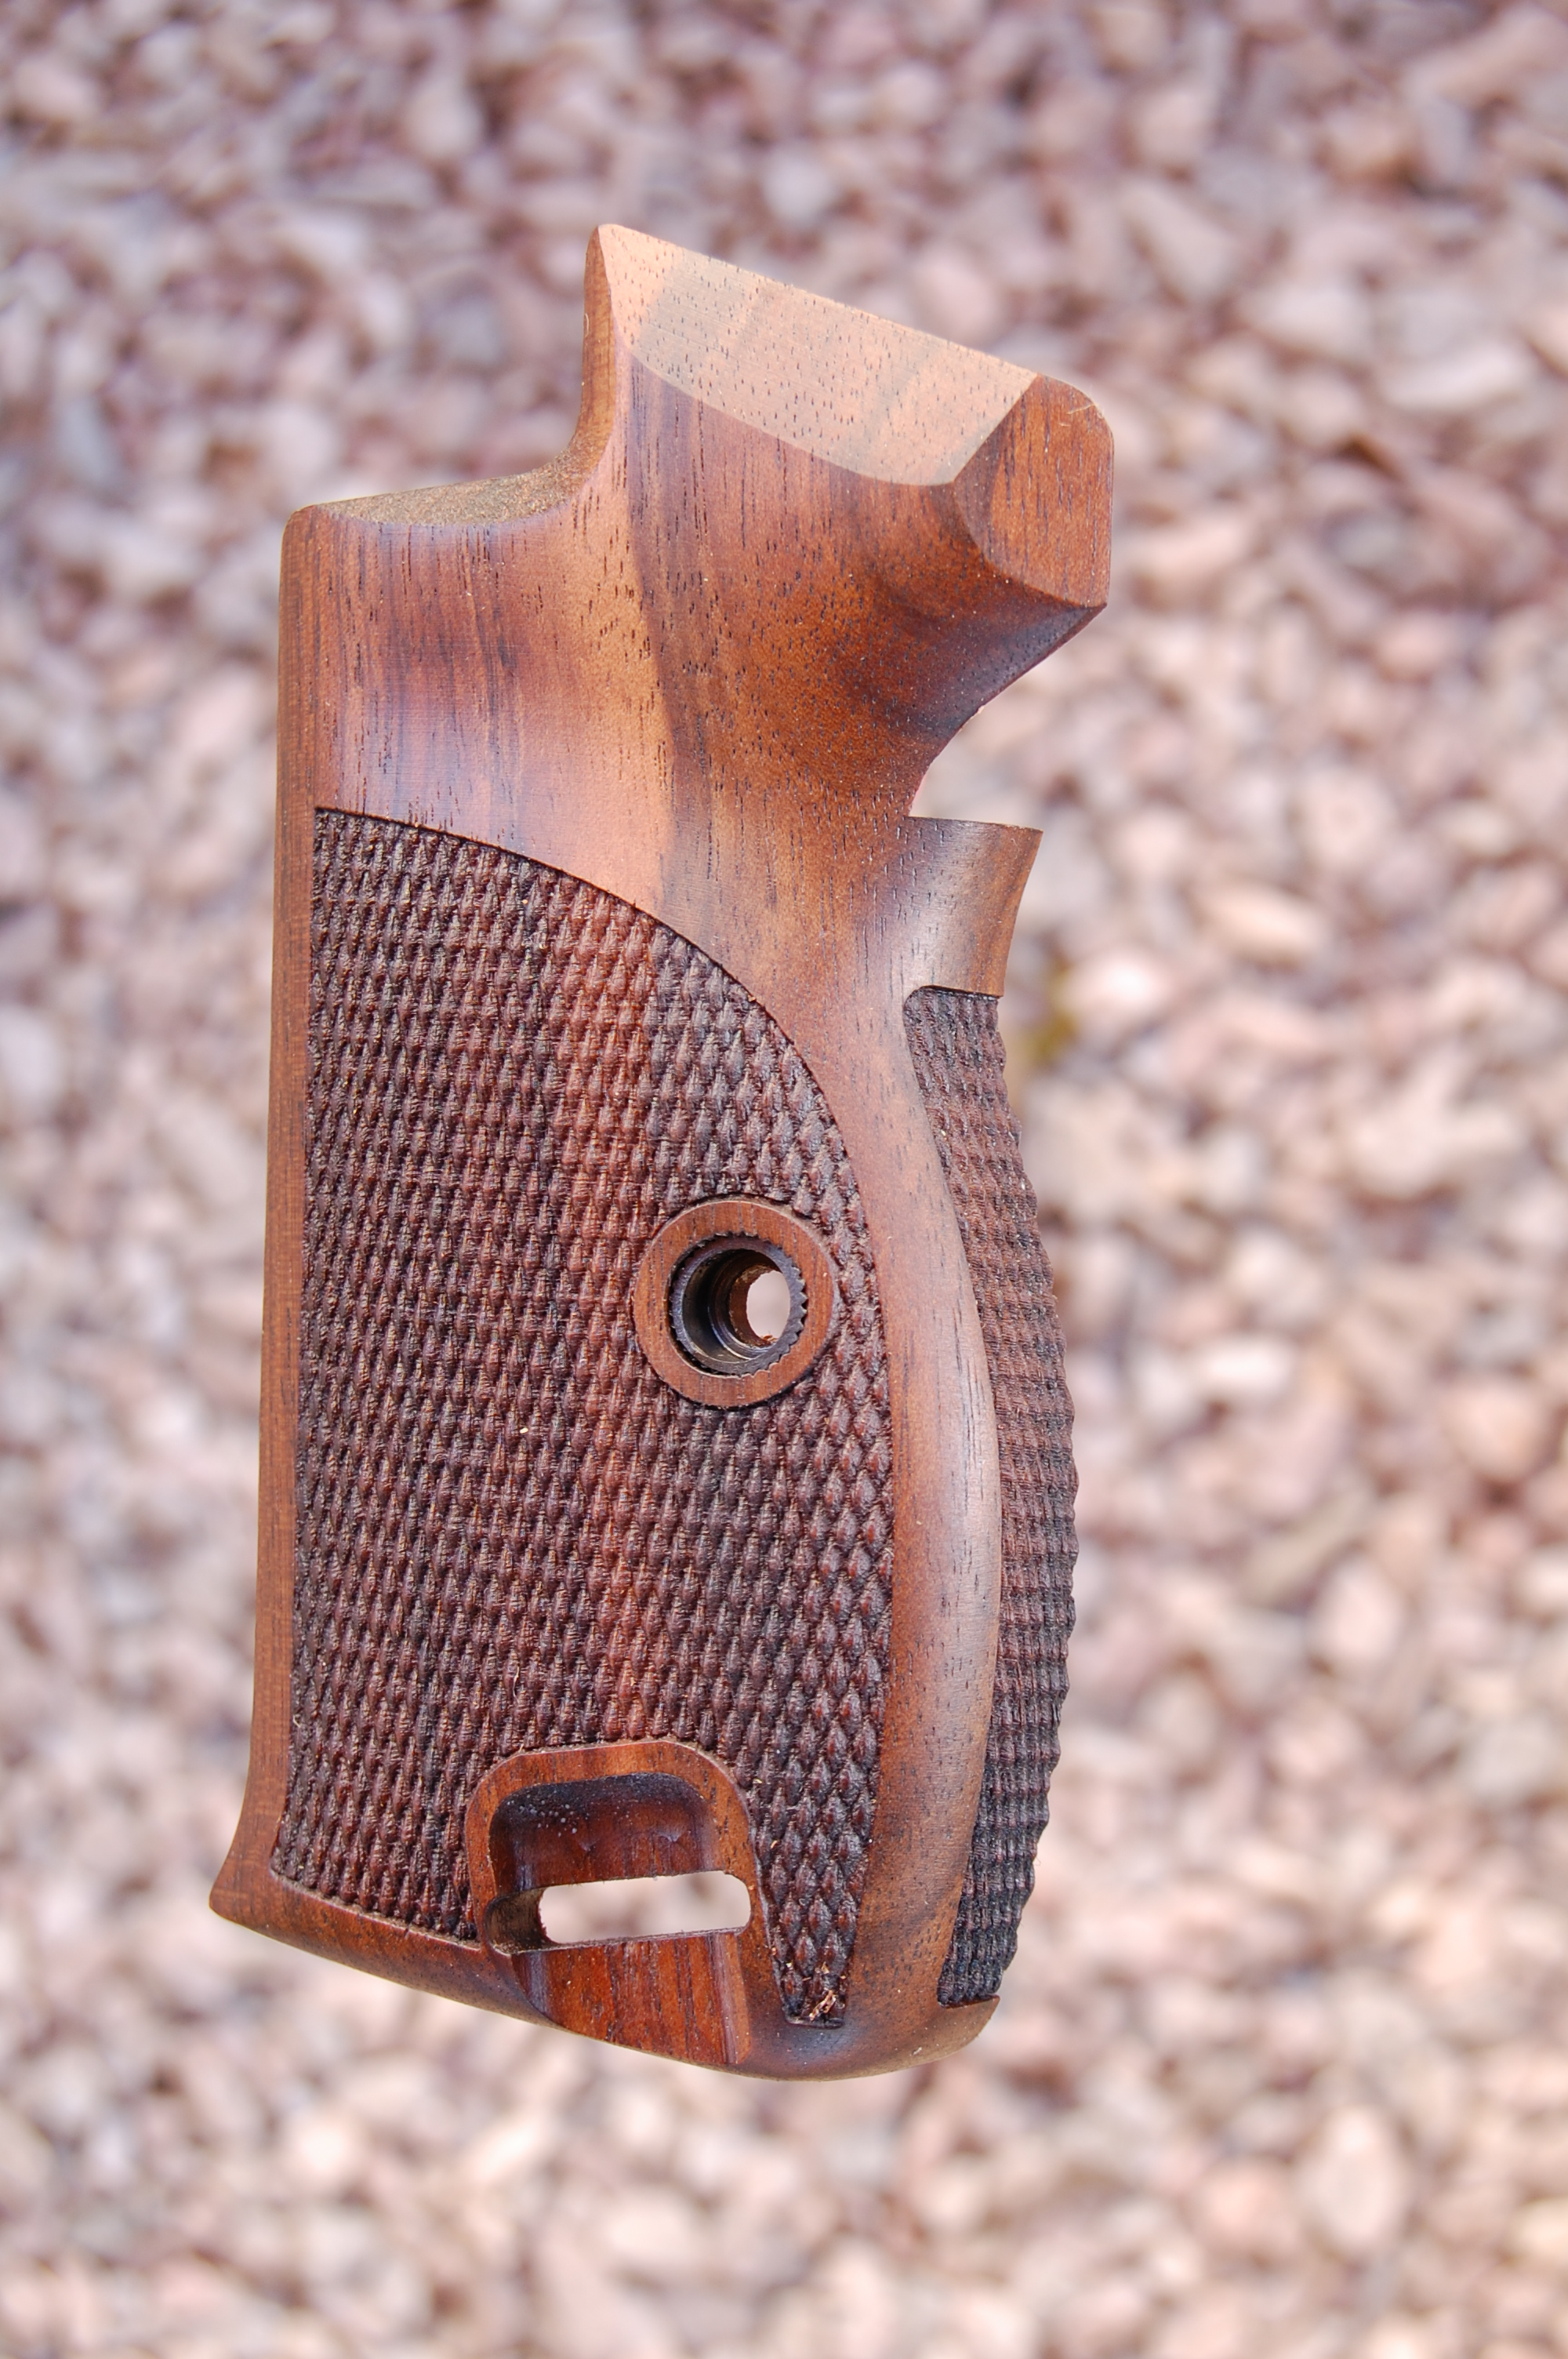 SIG P210 grips, bottom mag. release (checkered back) - full size